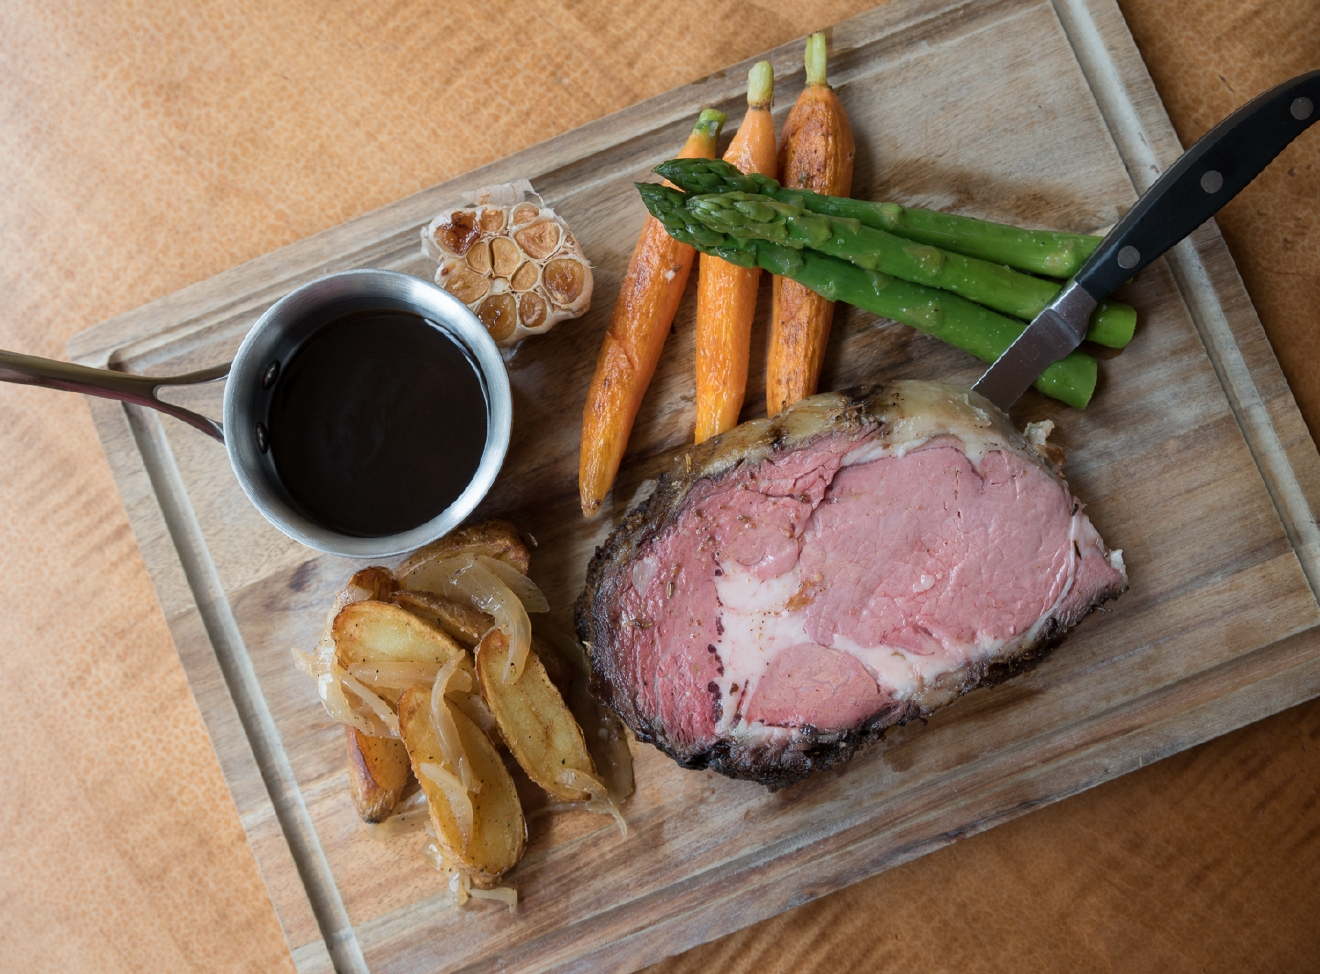 Prime rib with roasted carrot & asparagus, fingerling potatoes & horseradish jus lie / Image: Sherry Lachelle Photography